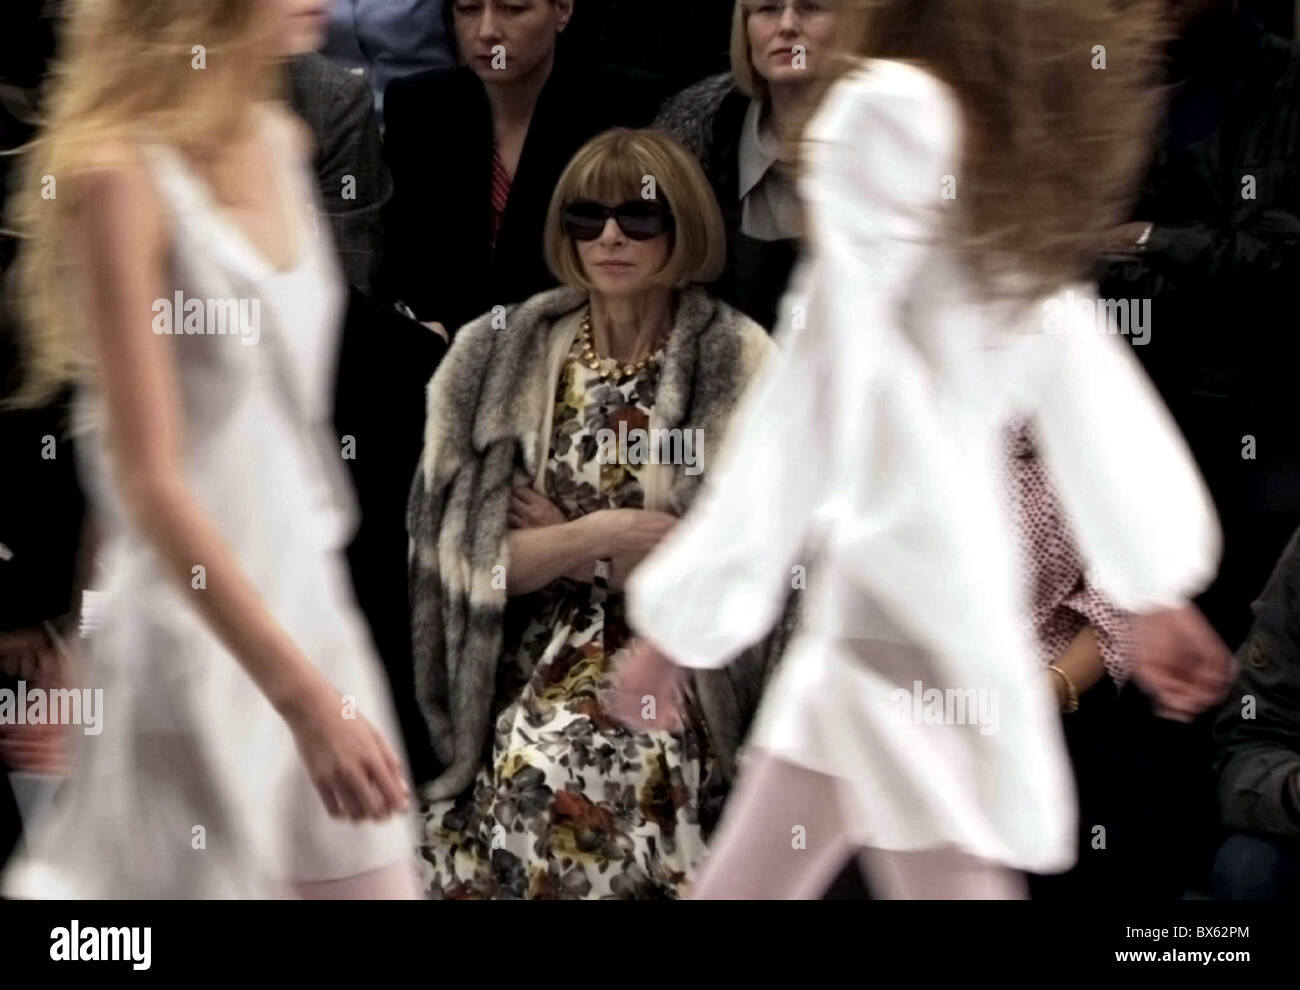 ANNA WINTOUR THE SEPTEMBER ISSUE (2009) - Stock Image